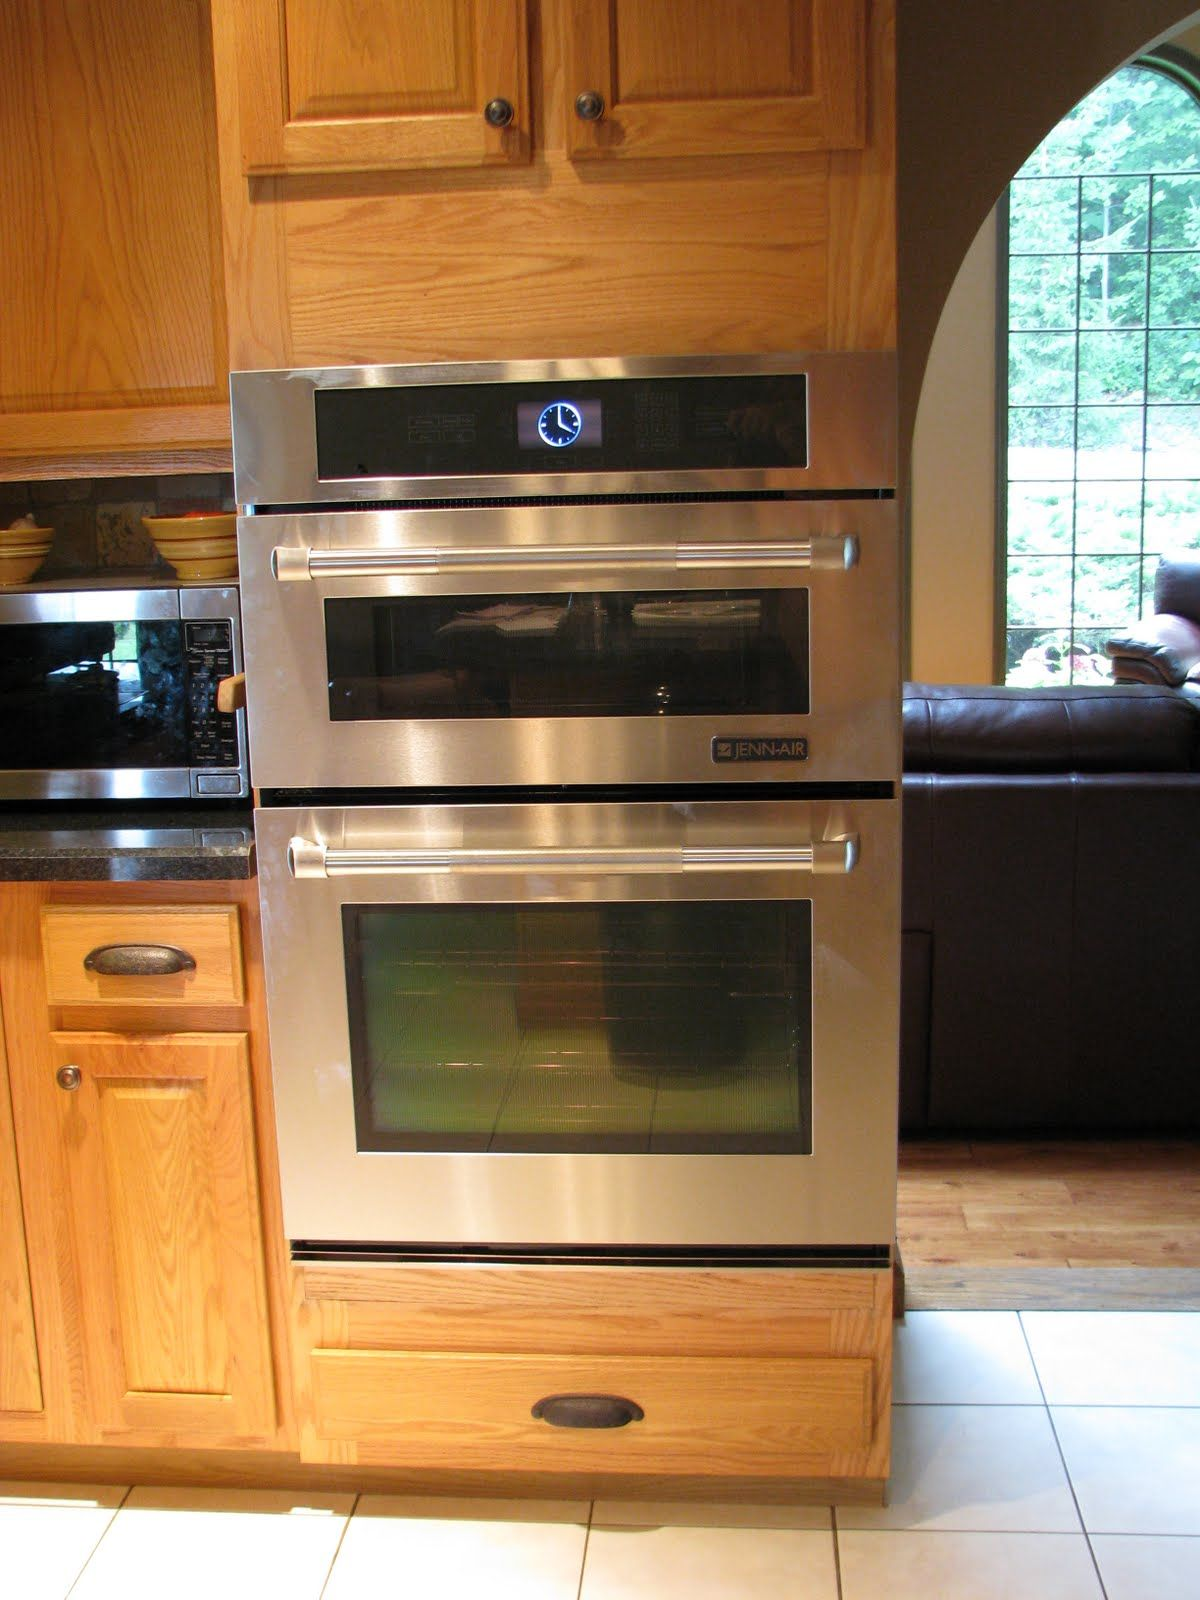 Small Kitchen With Double Oven ~ Double wall oven like the smaller too for